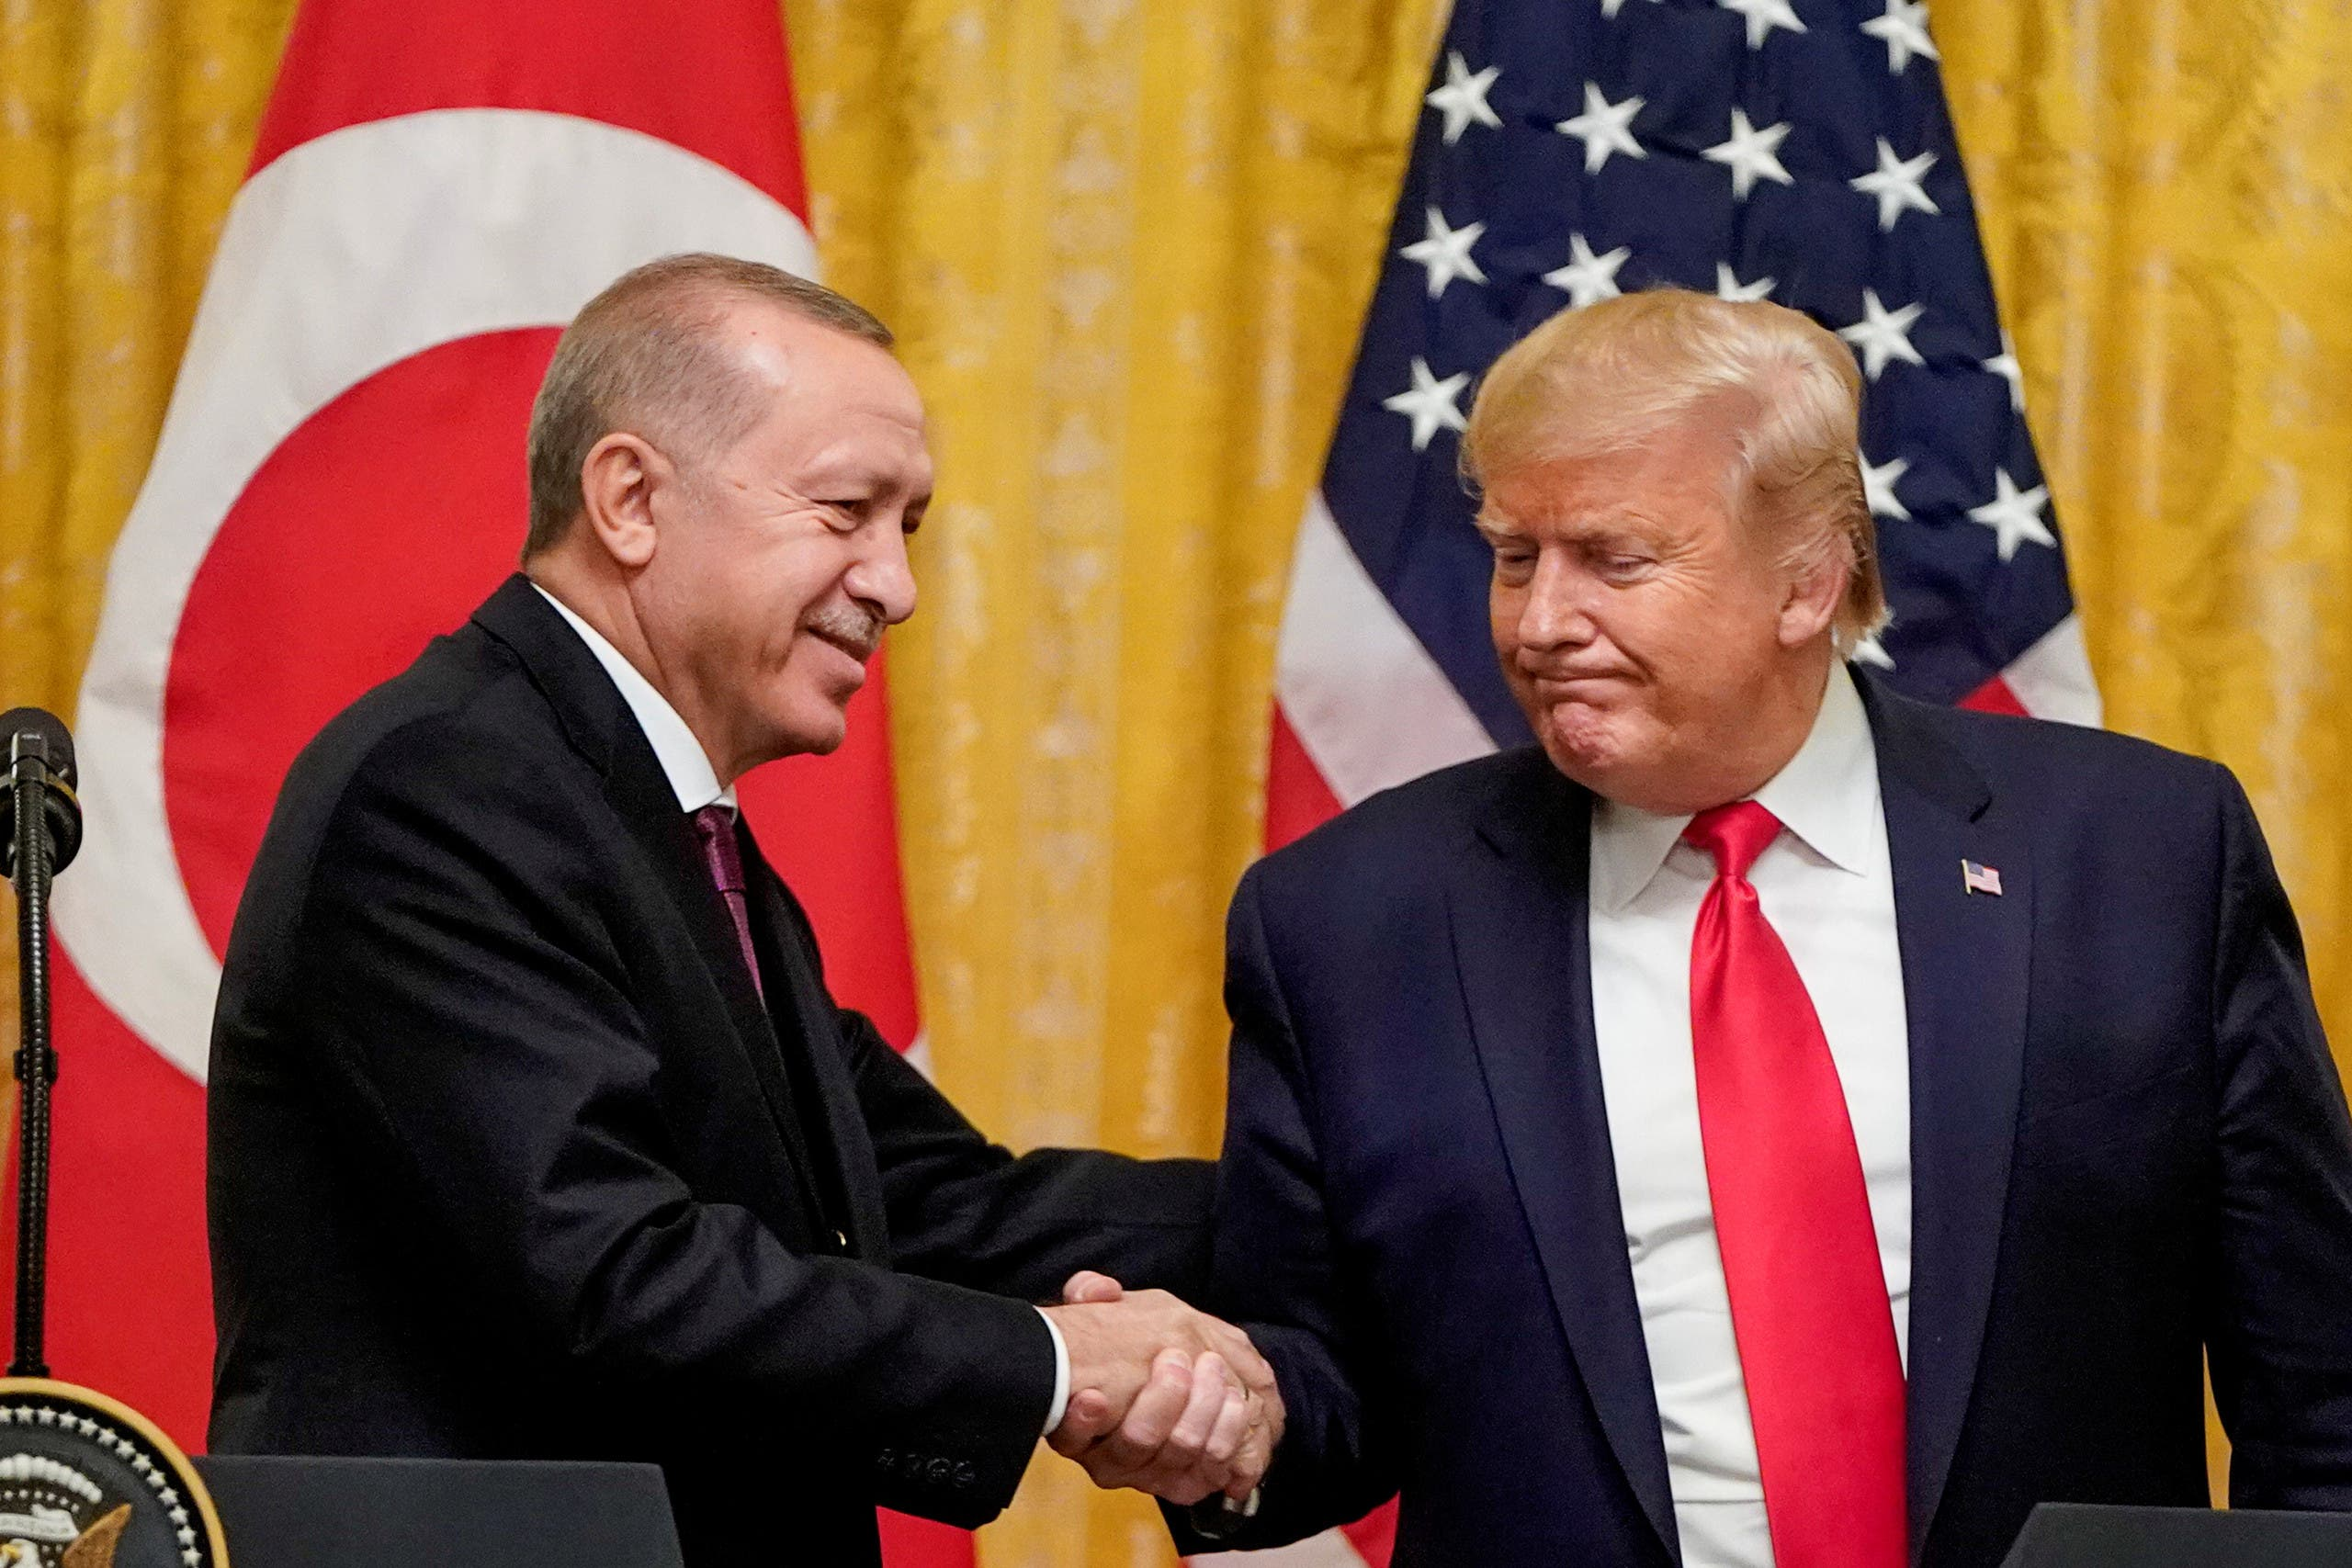 US President Donald Trump greets Turkey's President Tayyip Erdogan during a joint news conference at the White House in Washington, US, November 13, 2019. (Reuters)